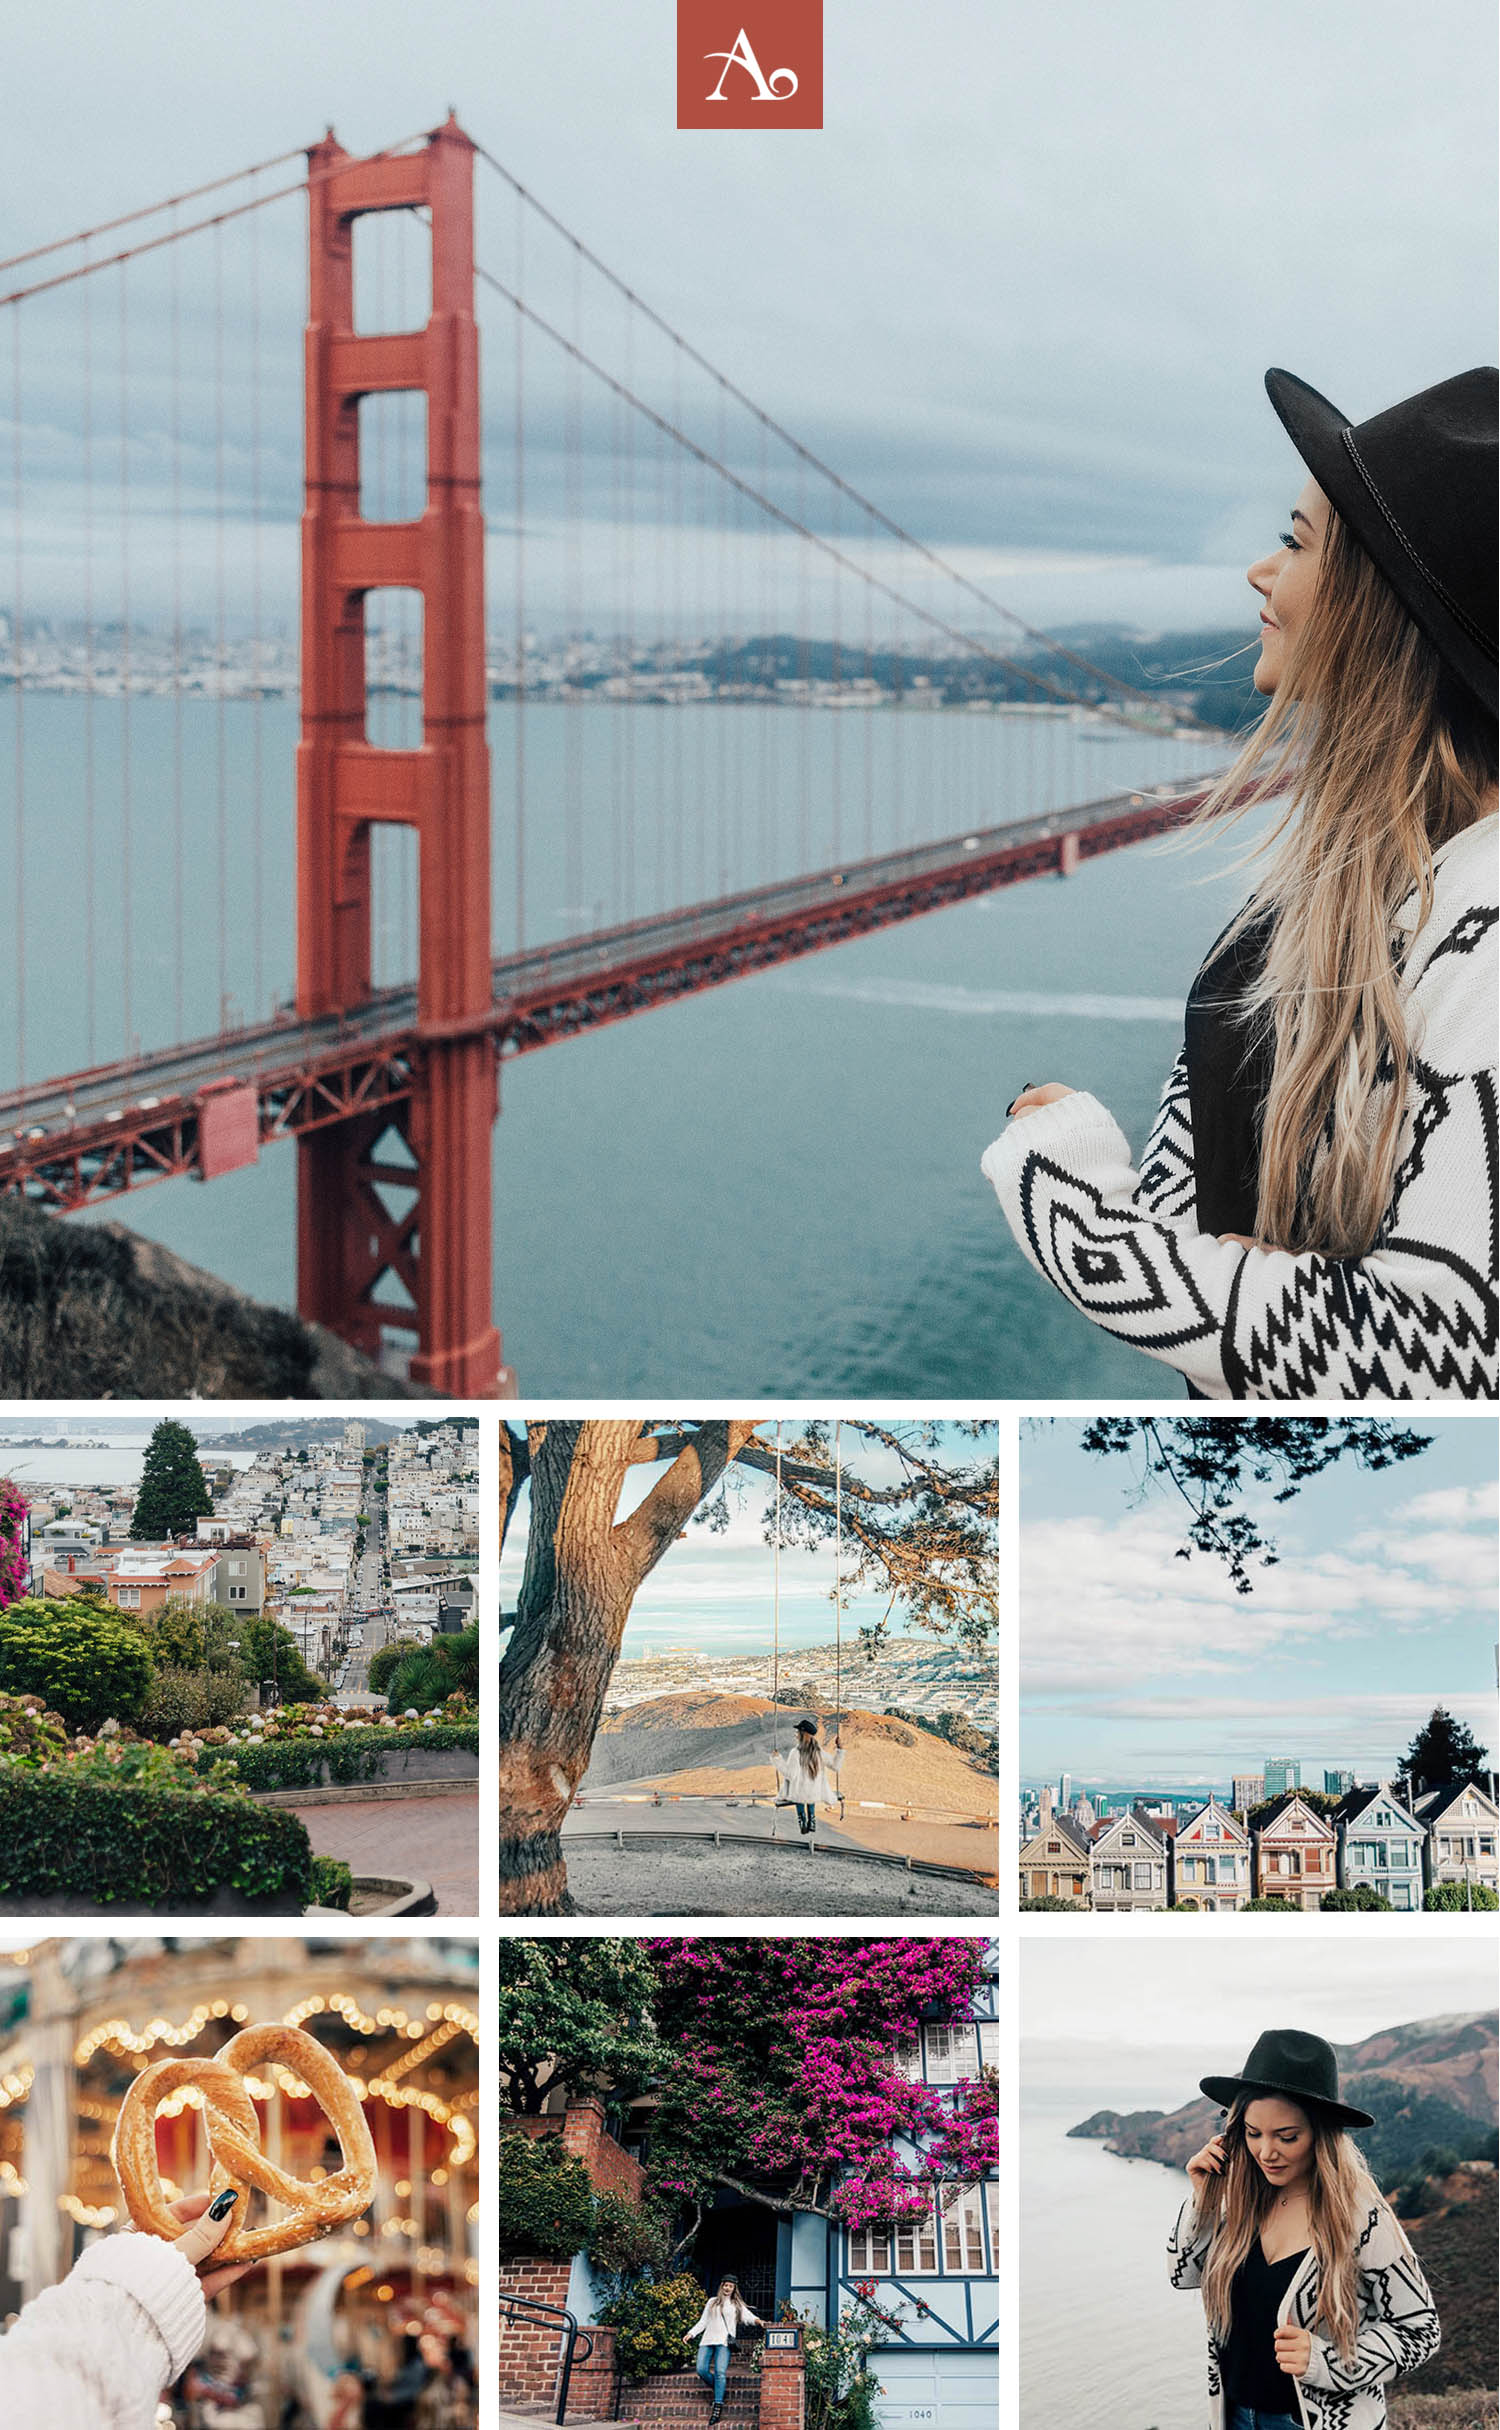 The Most Instagram-Worthy Spots in San Francisco